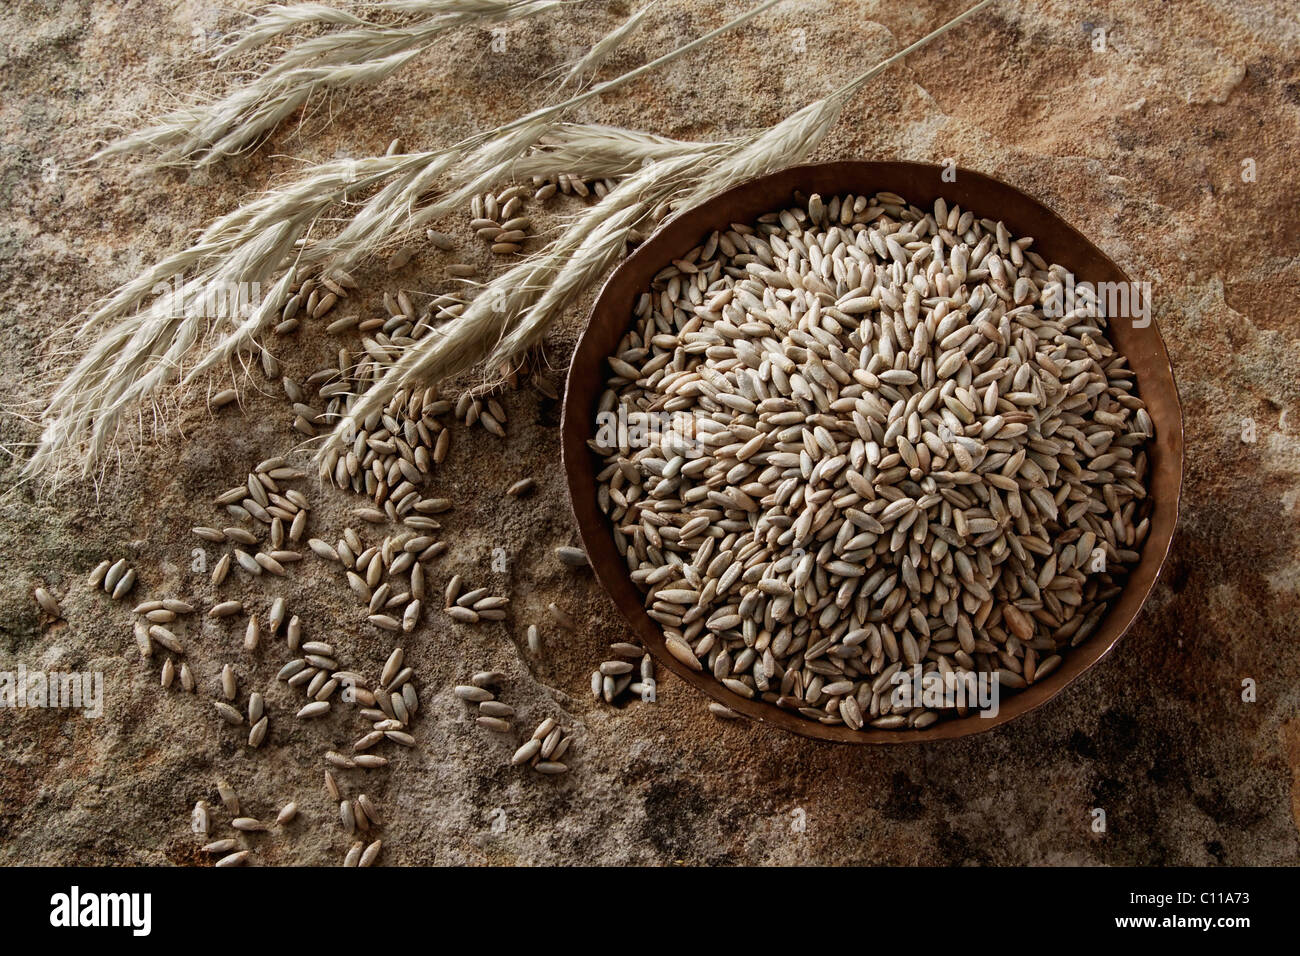 Rye grains (Secale cereale) in a copper bowl on a stone surface Stock Photo